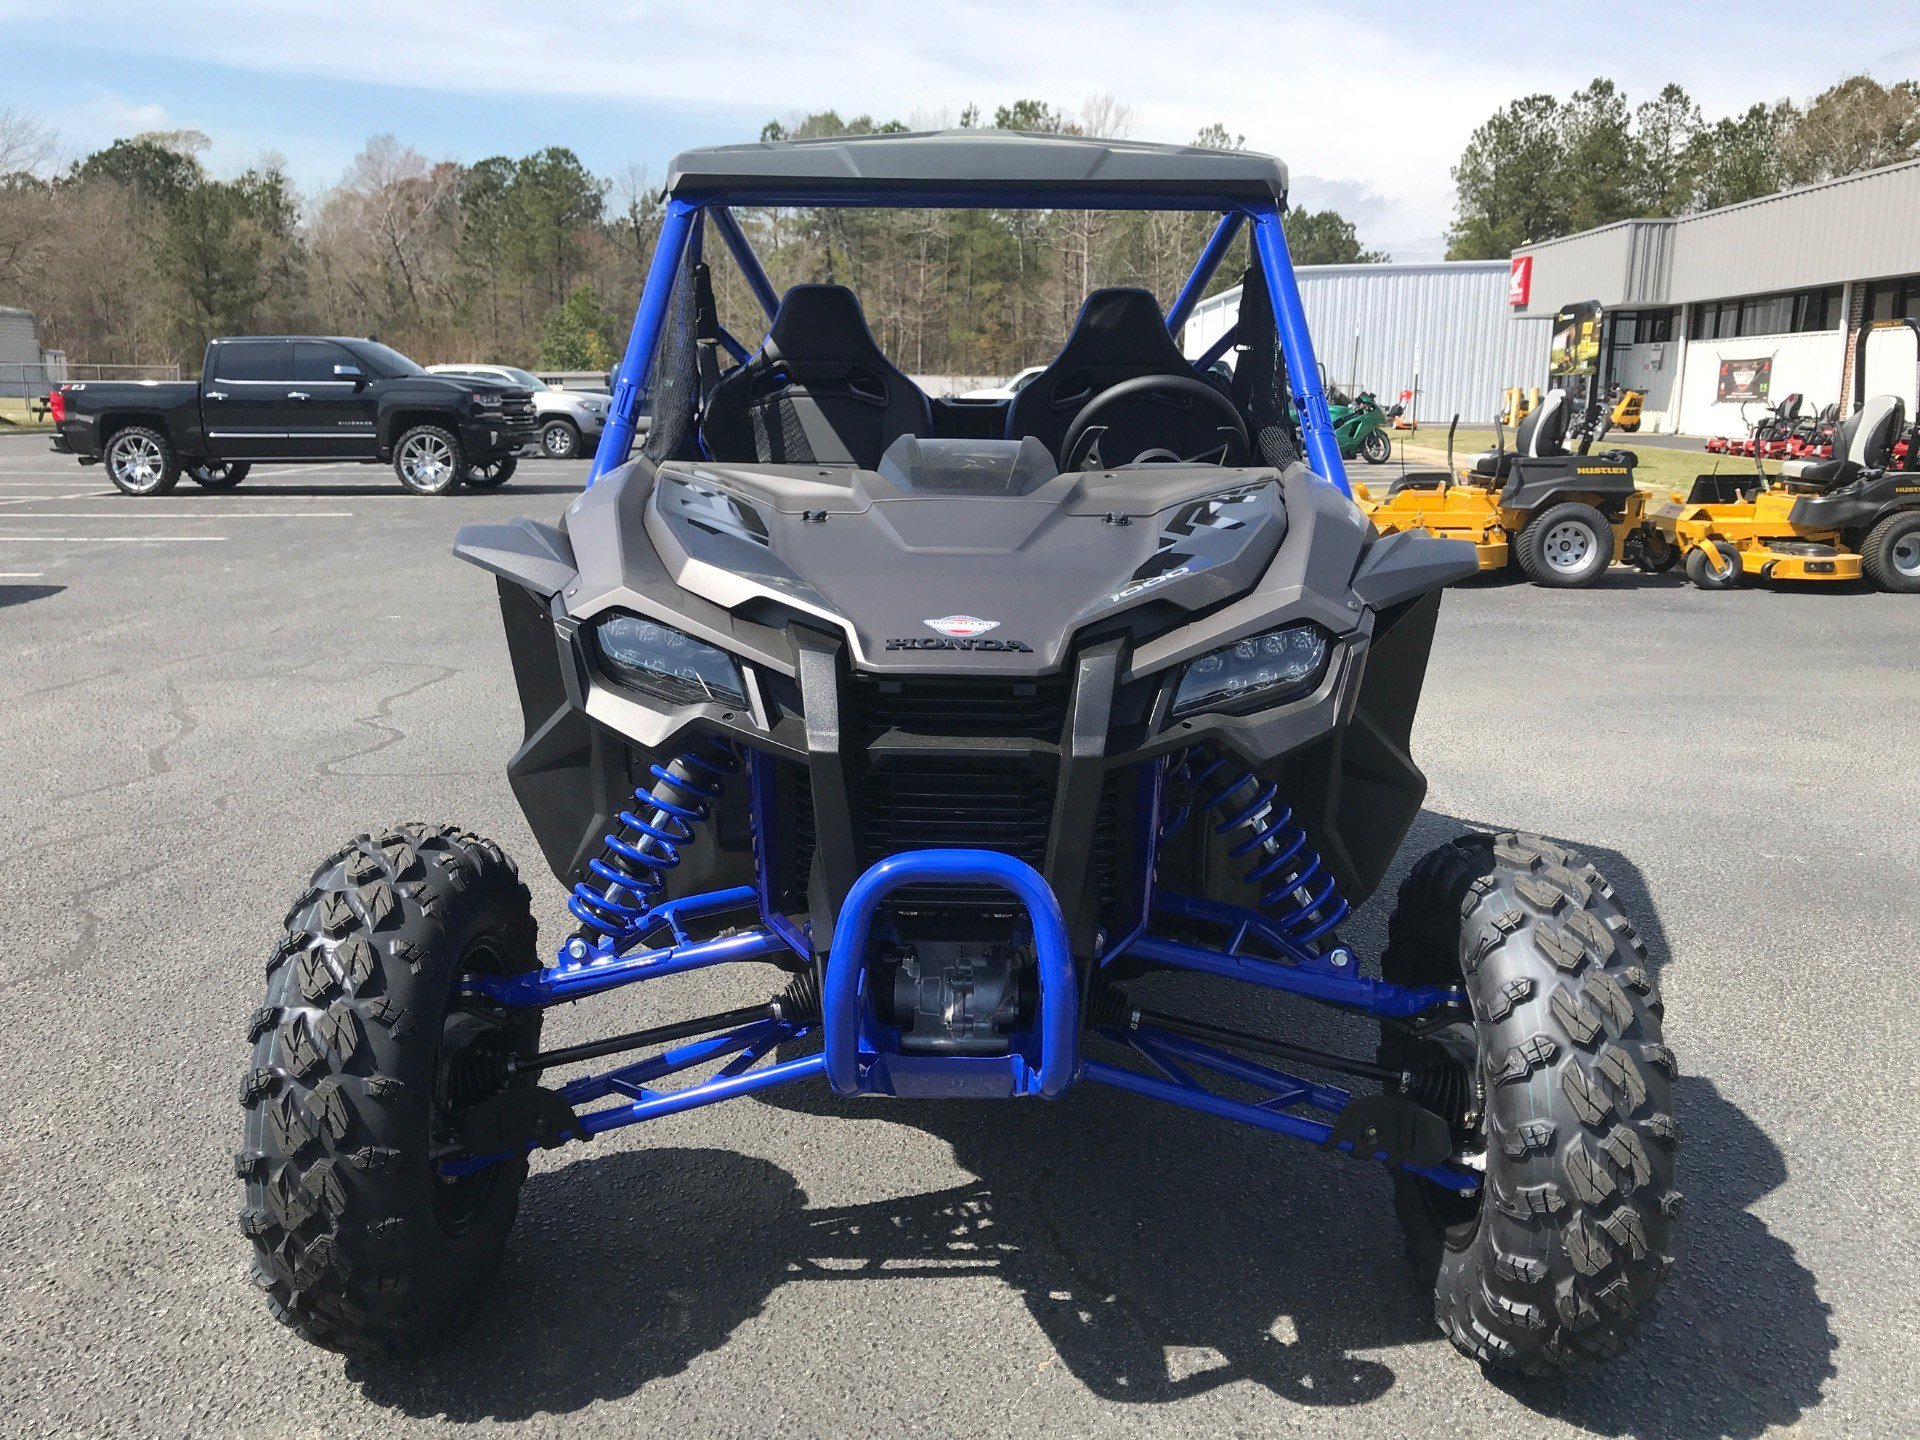 2021 Honda Talon 1000R FOX Live Valve in Greenville, North Carolina - Photo 4